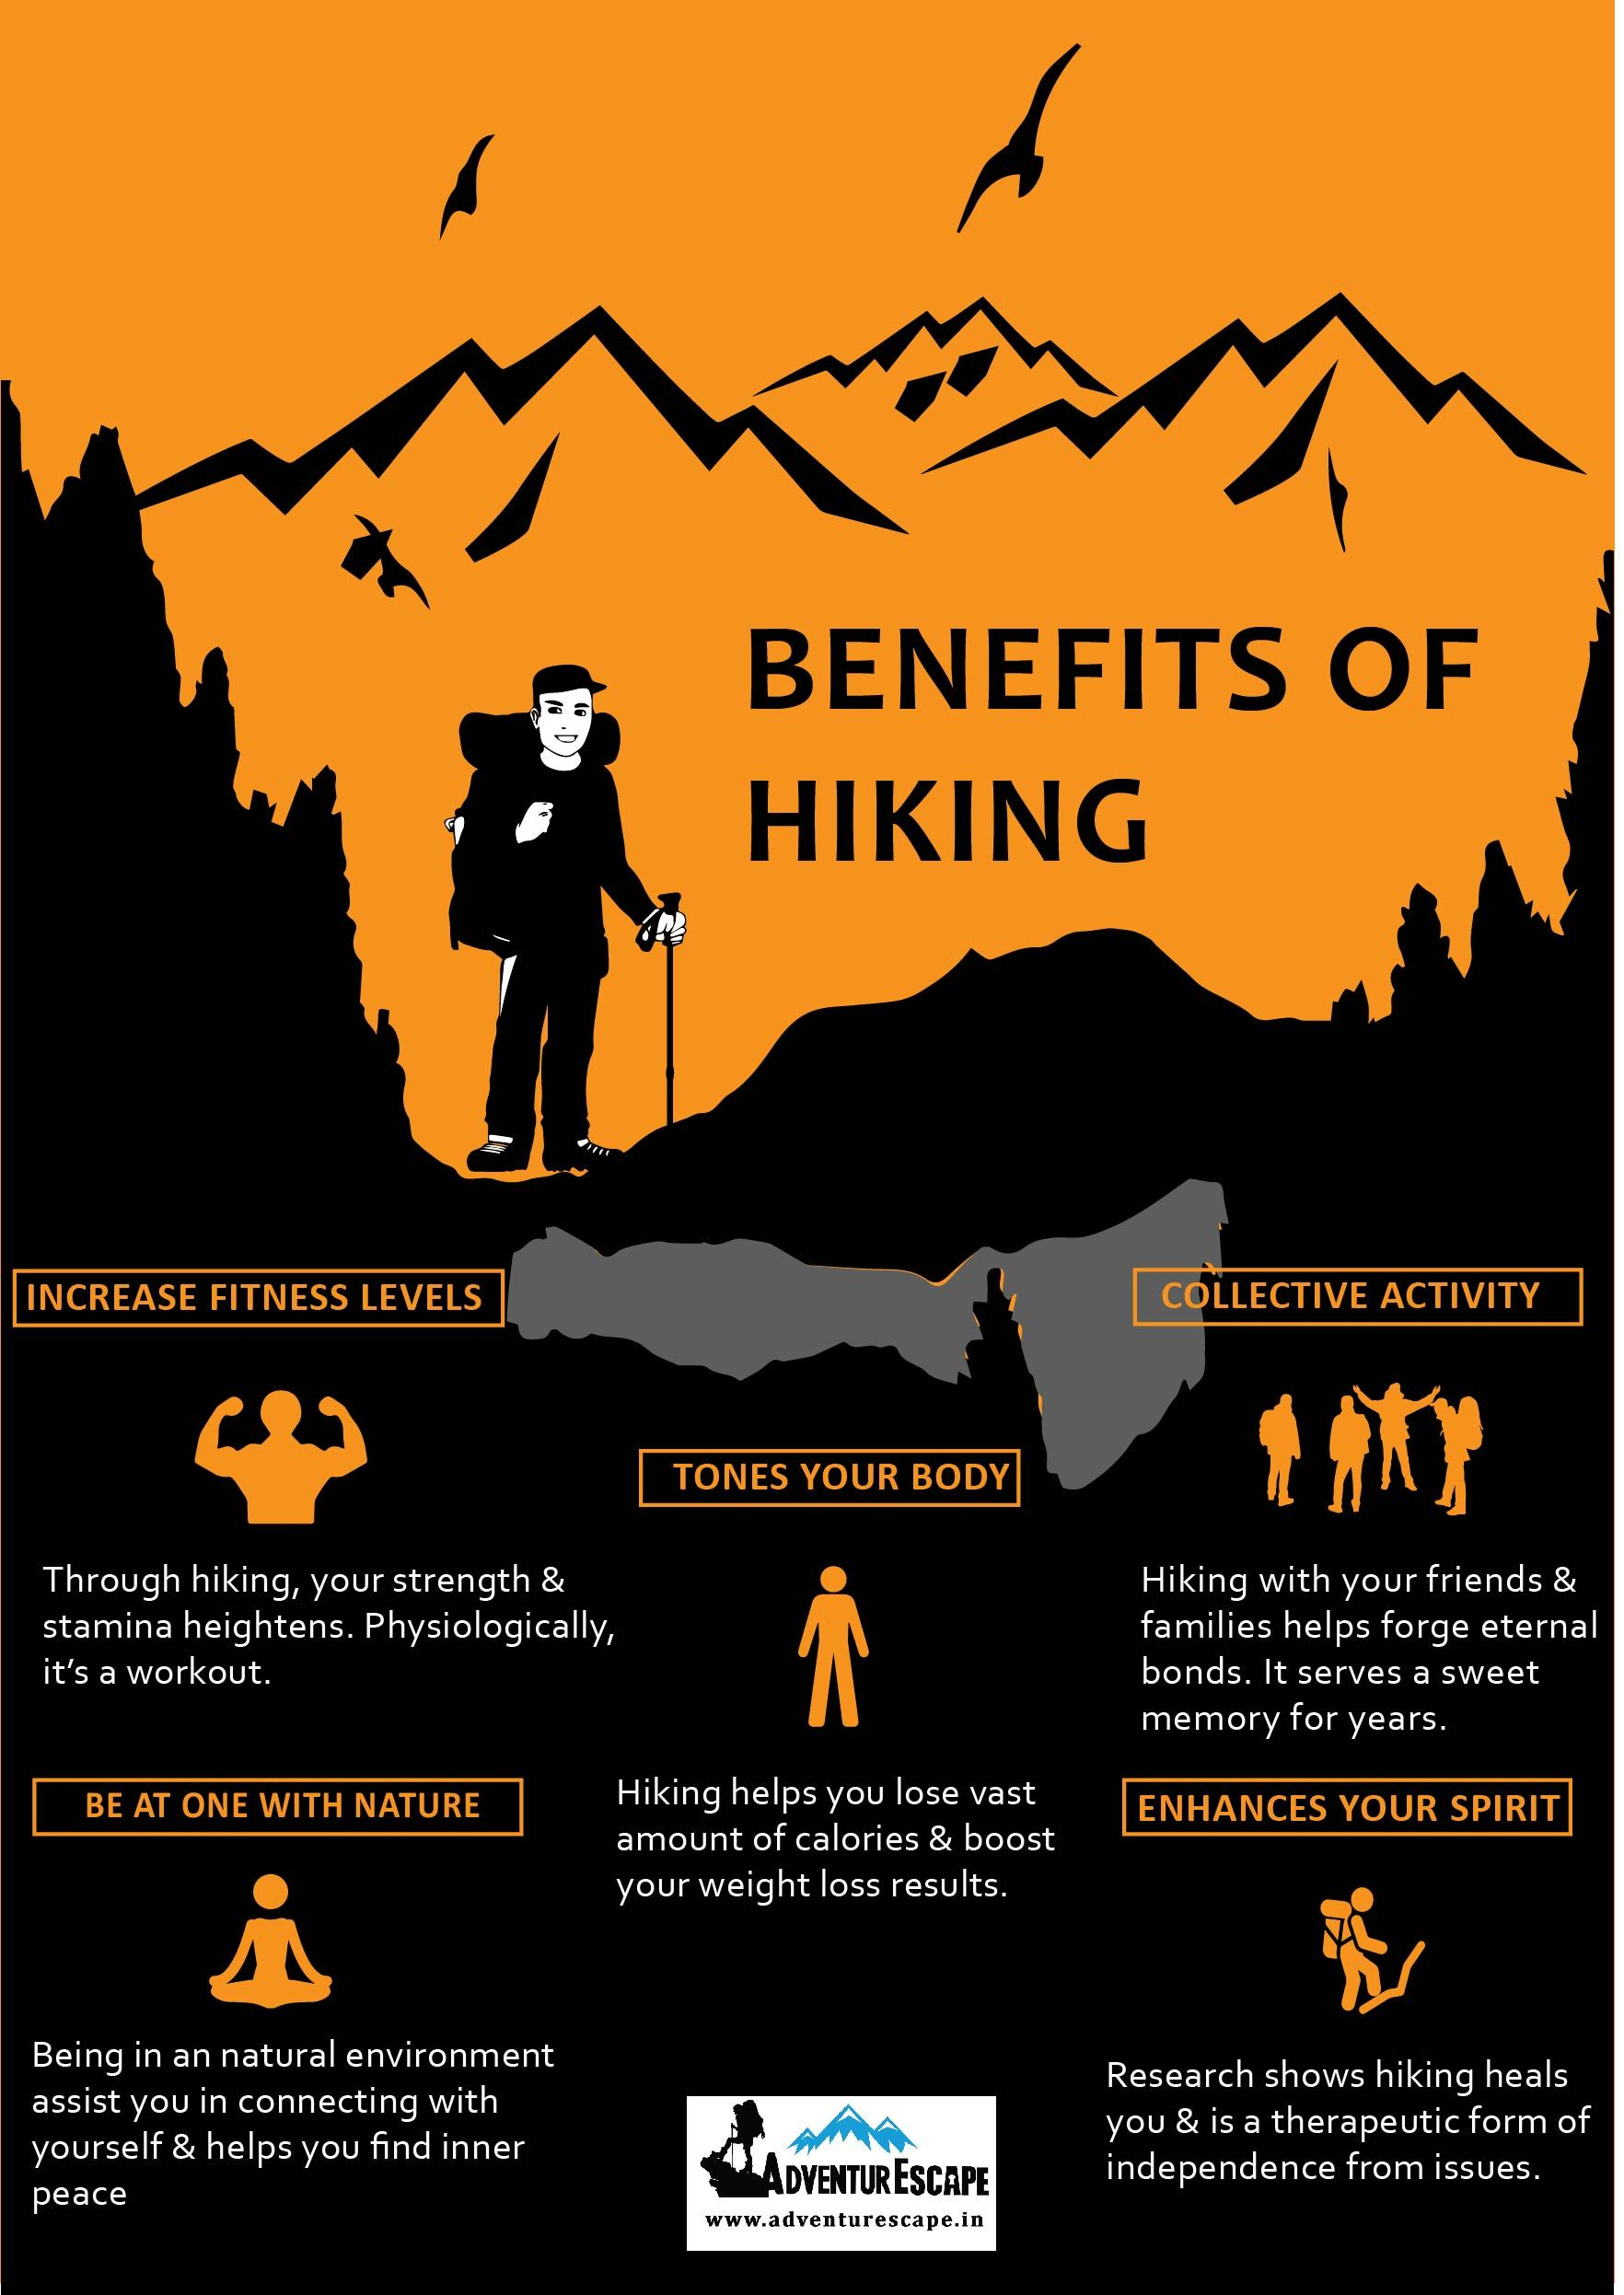 Hiking is one of the easiest workouts to pick up because